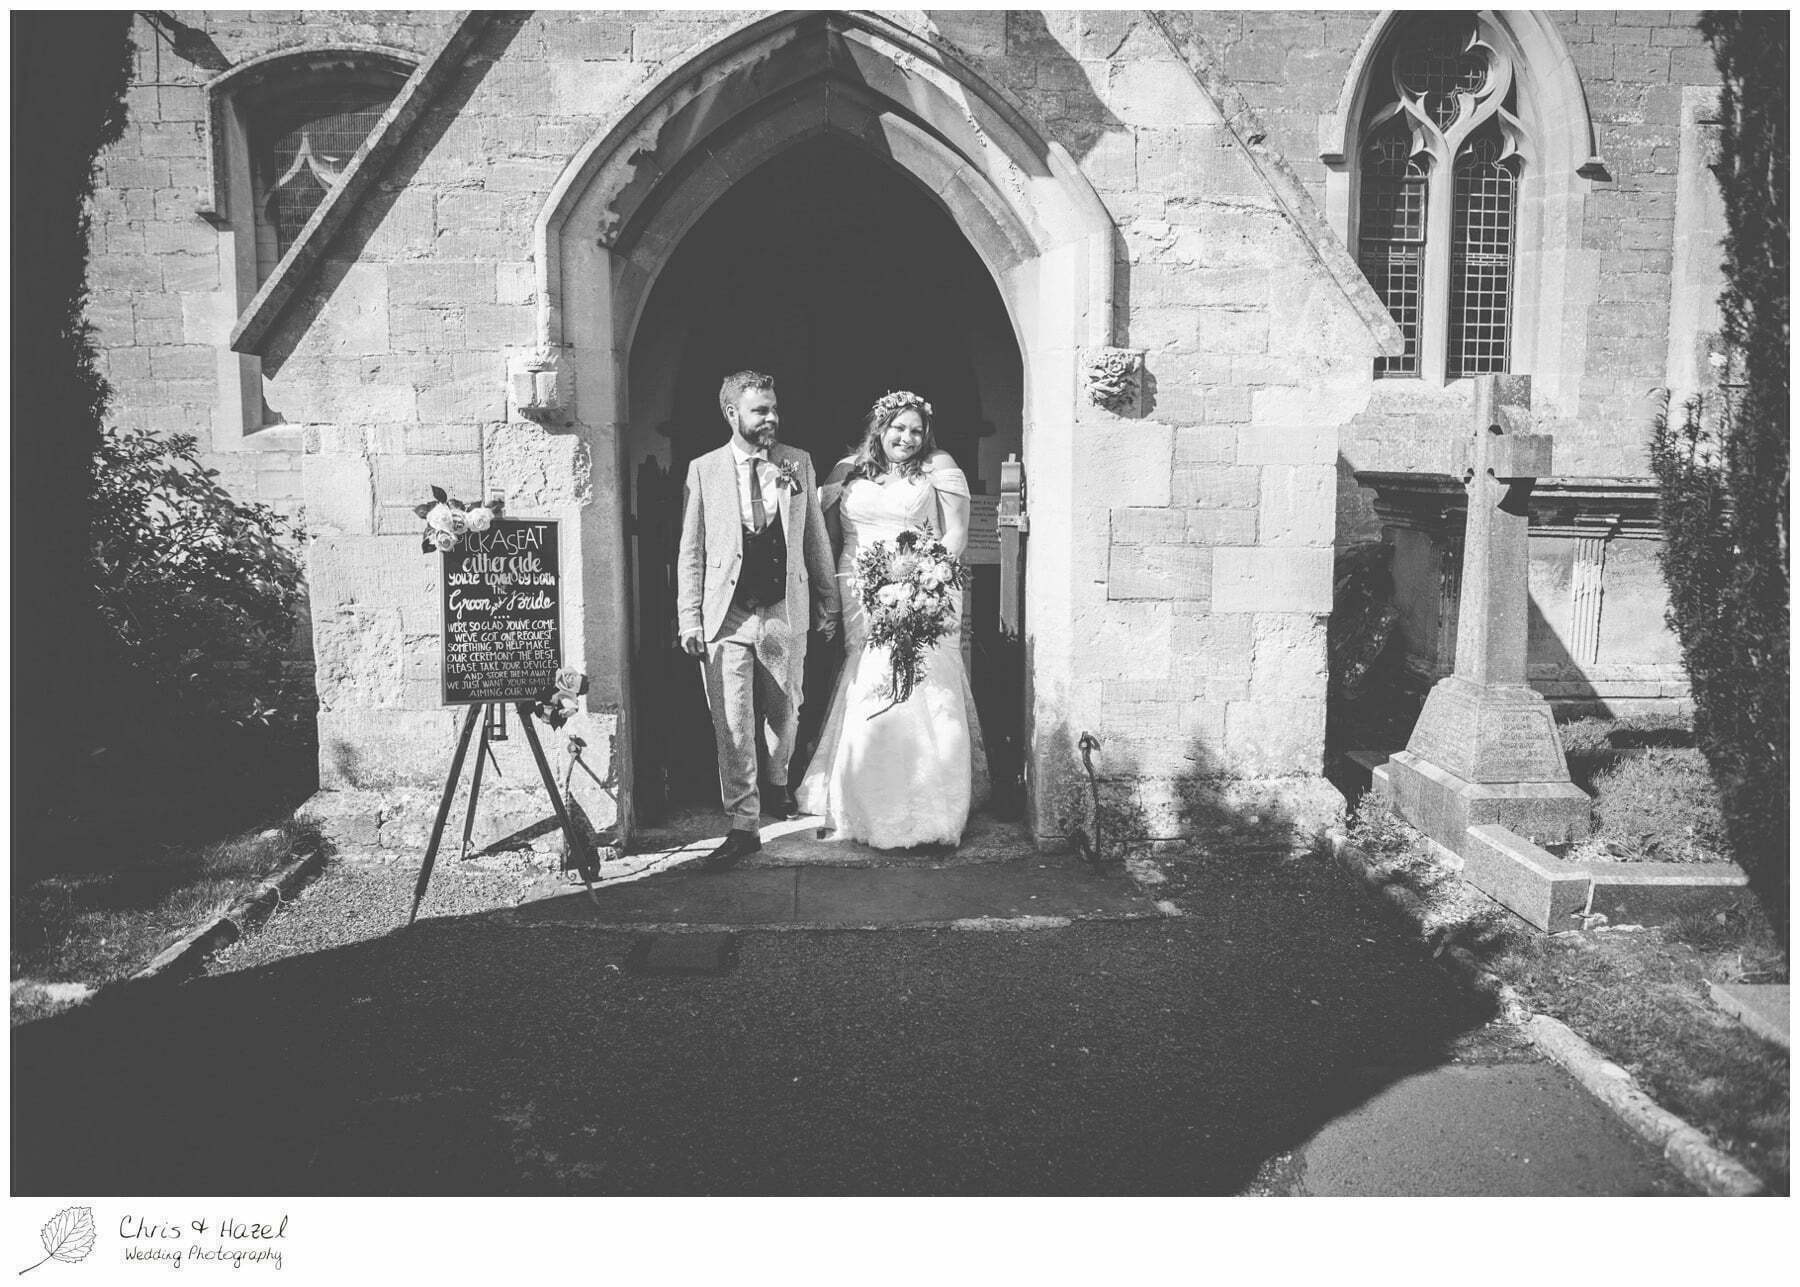 Bride and groom leaving the church, Hilperton Church, St Michael & All Angels' Church, Wedding Photography, Wiltshire Wedding Photographer Trowbridge, Chris and Hazel Wedding Photography